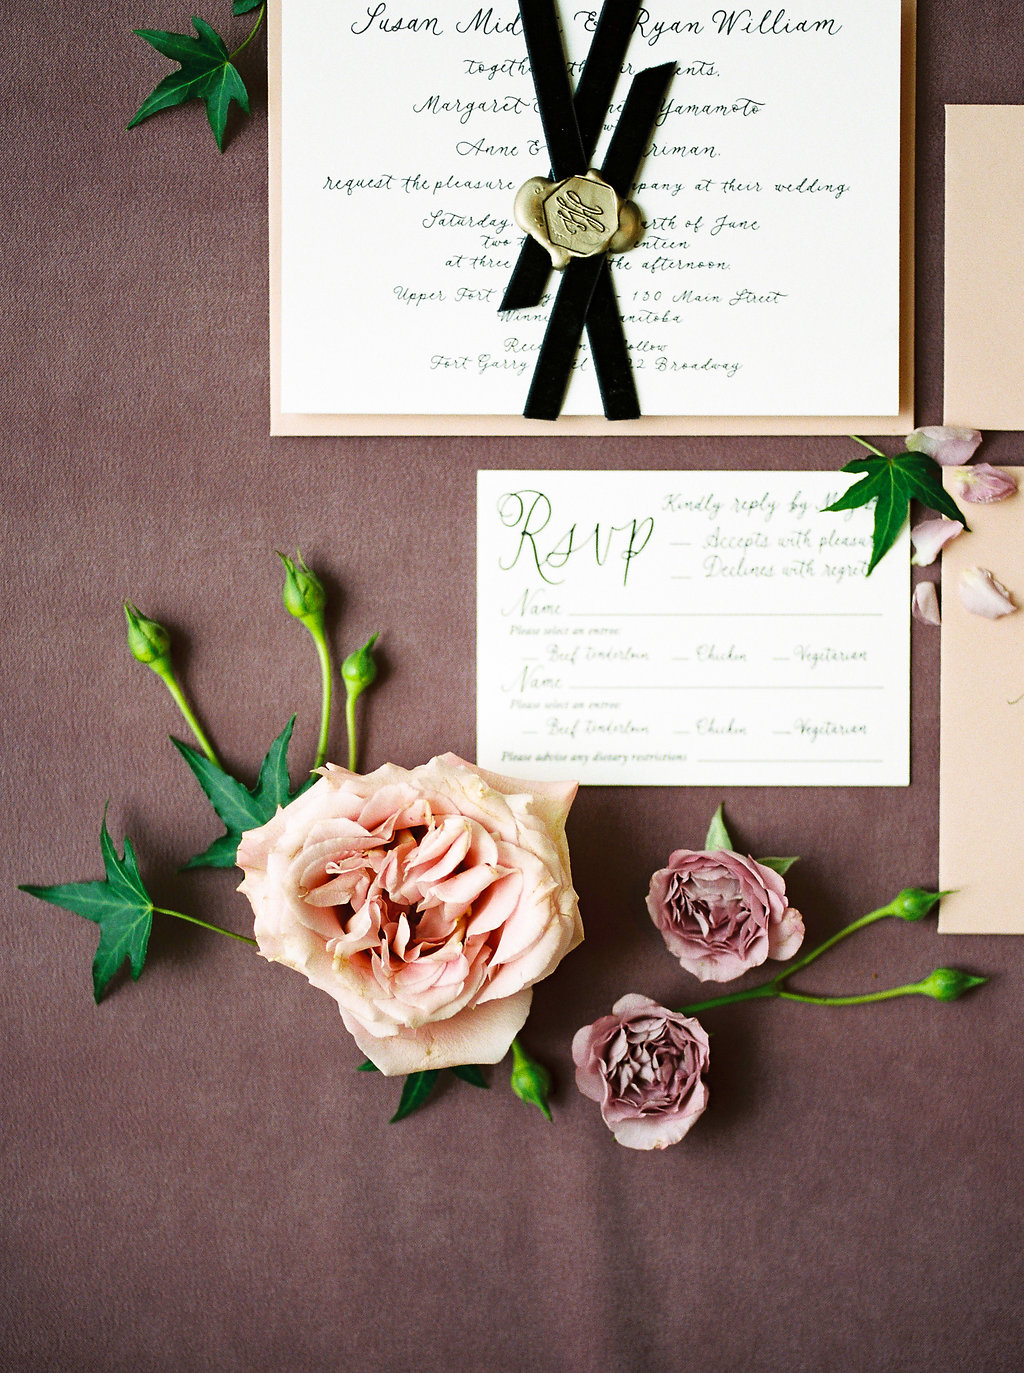 Calligraphy Wedding Invitations - Romantic Wedding Inspiration